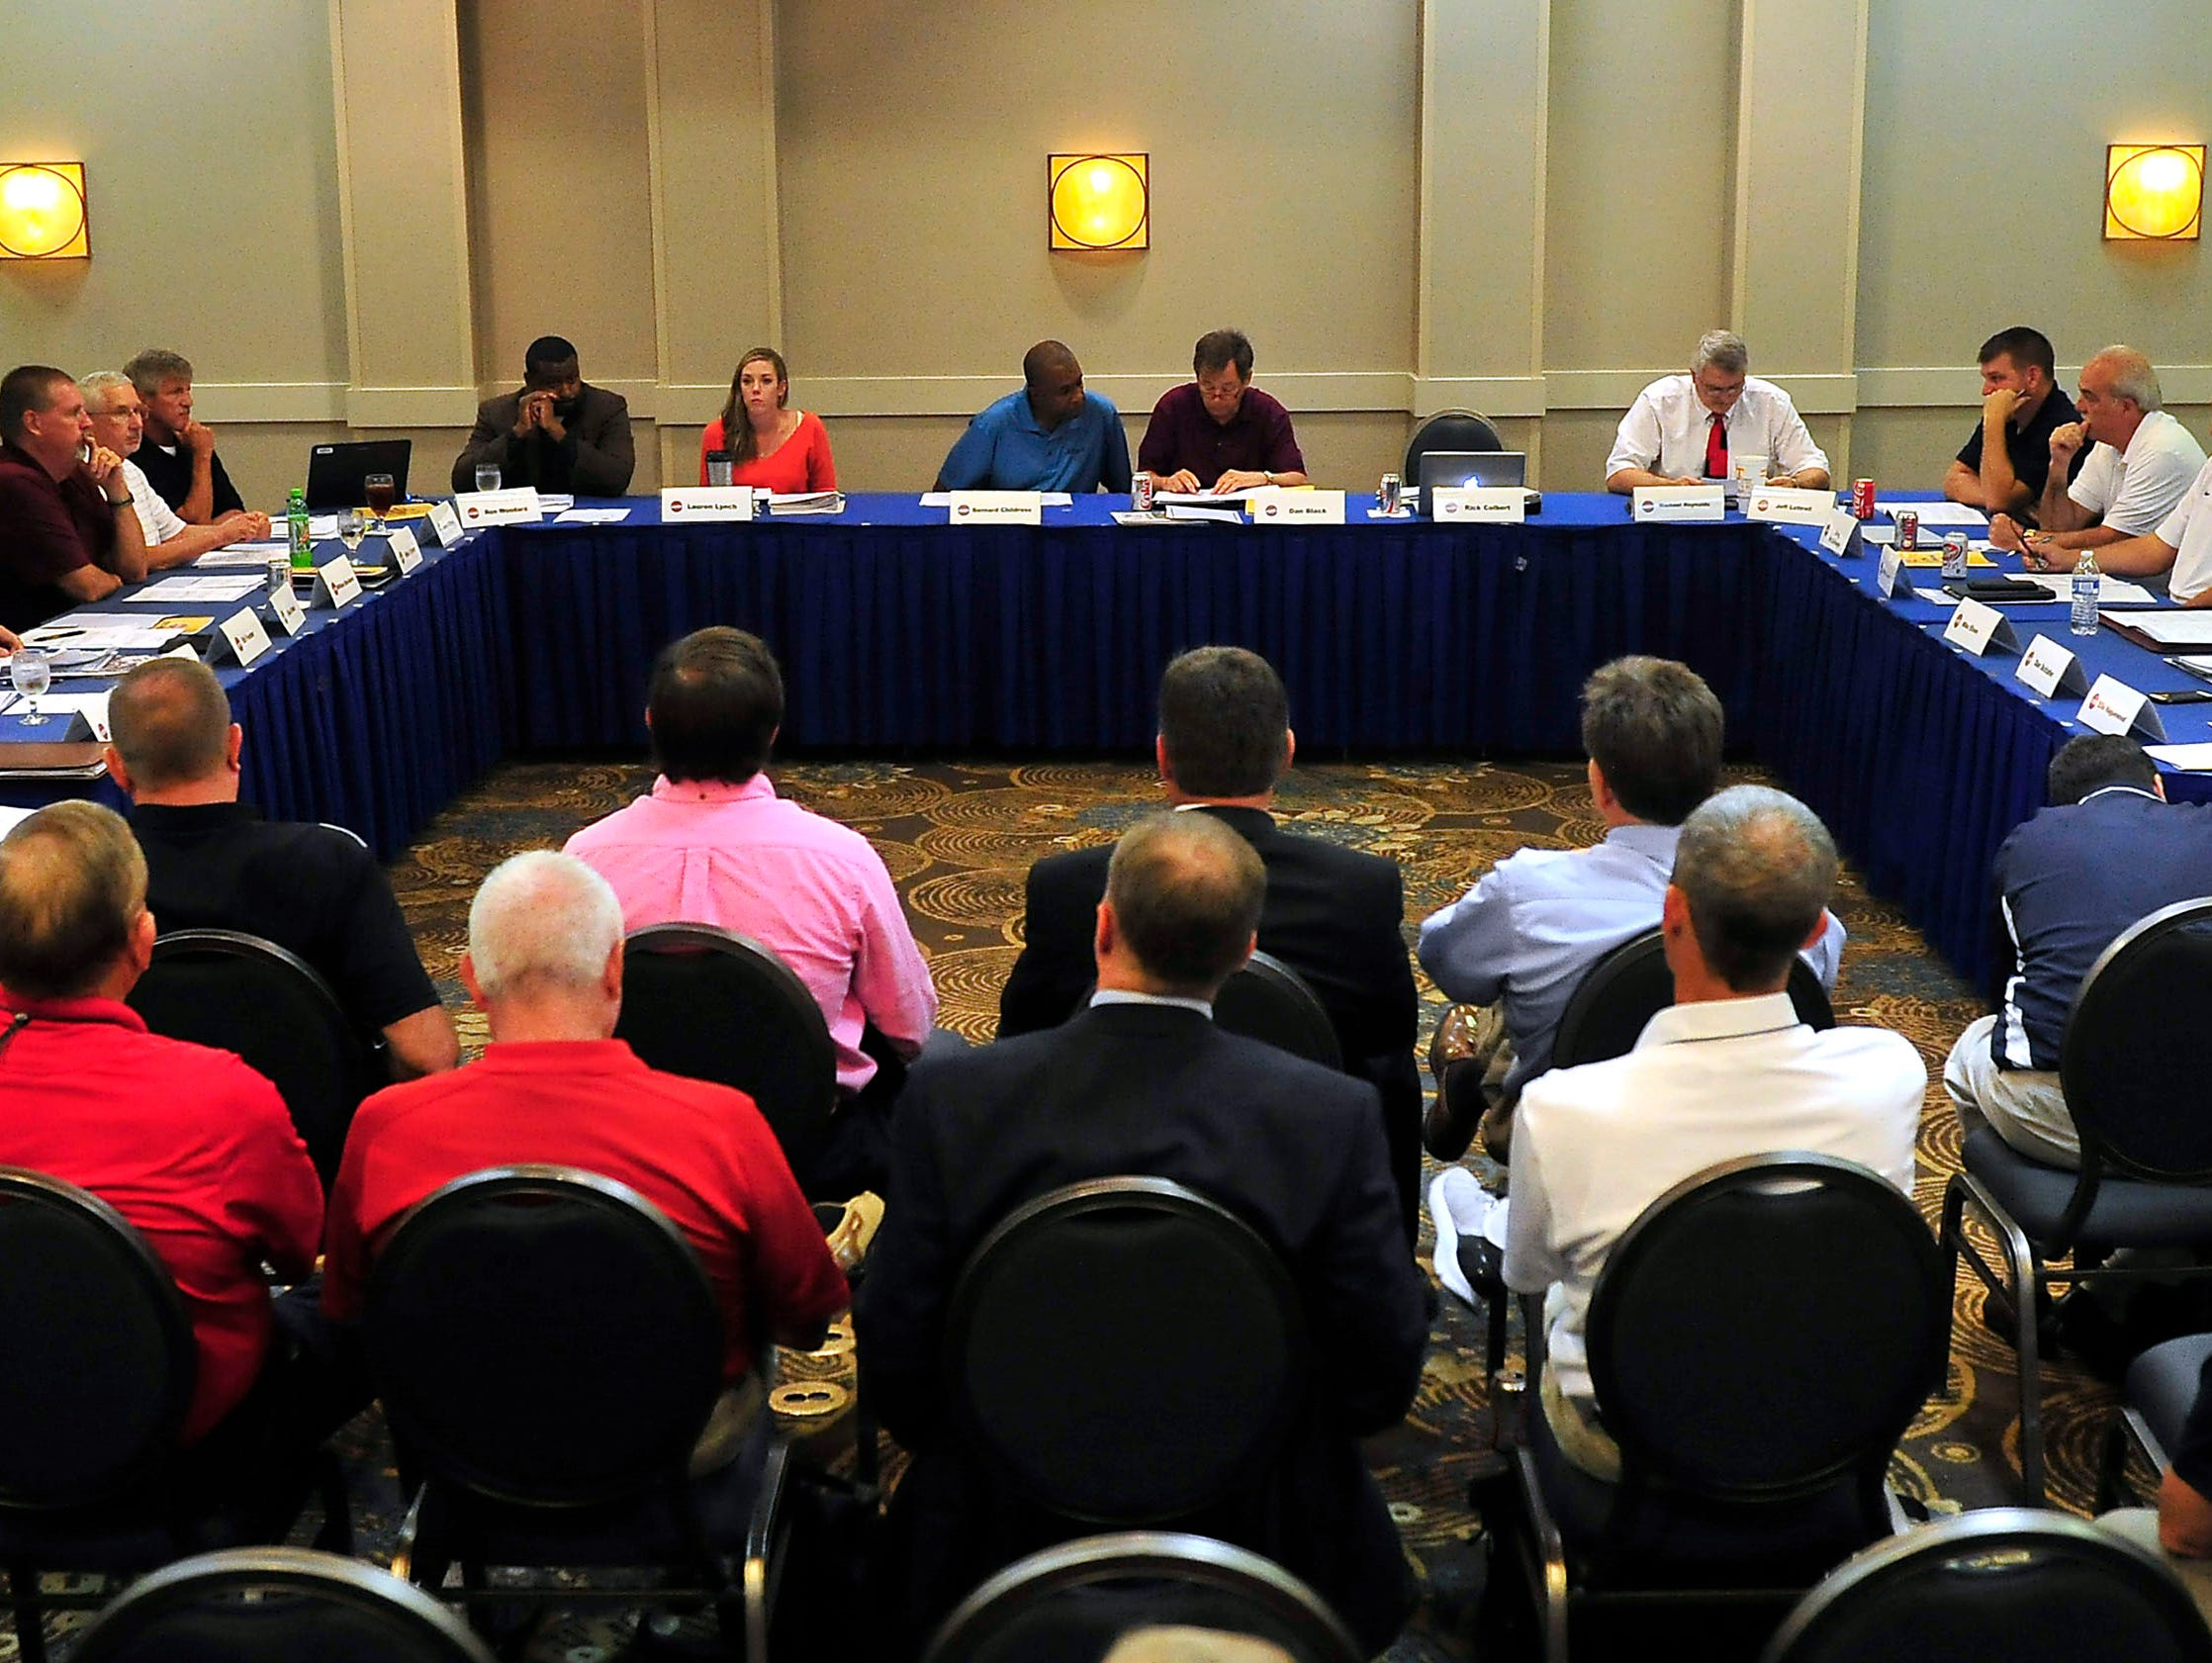 The TSSAA Legislative Council meeting is held to vote on seven proposed changes to its constitutional bylaws at DoubleTree Hotel in Murfreesboro, Tenn., Tuesday, Sept. 1, 2015.